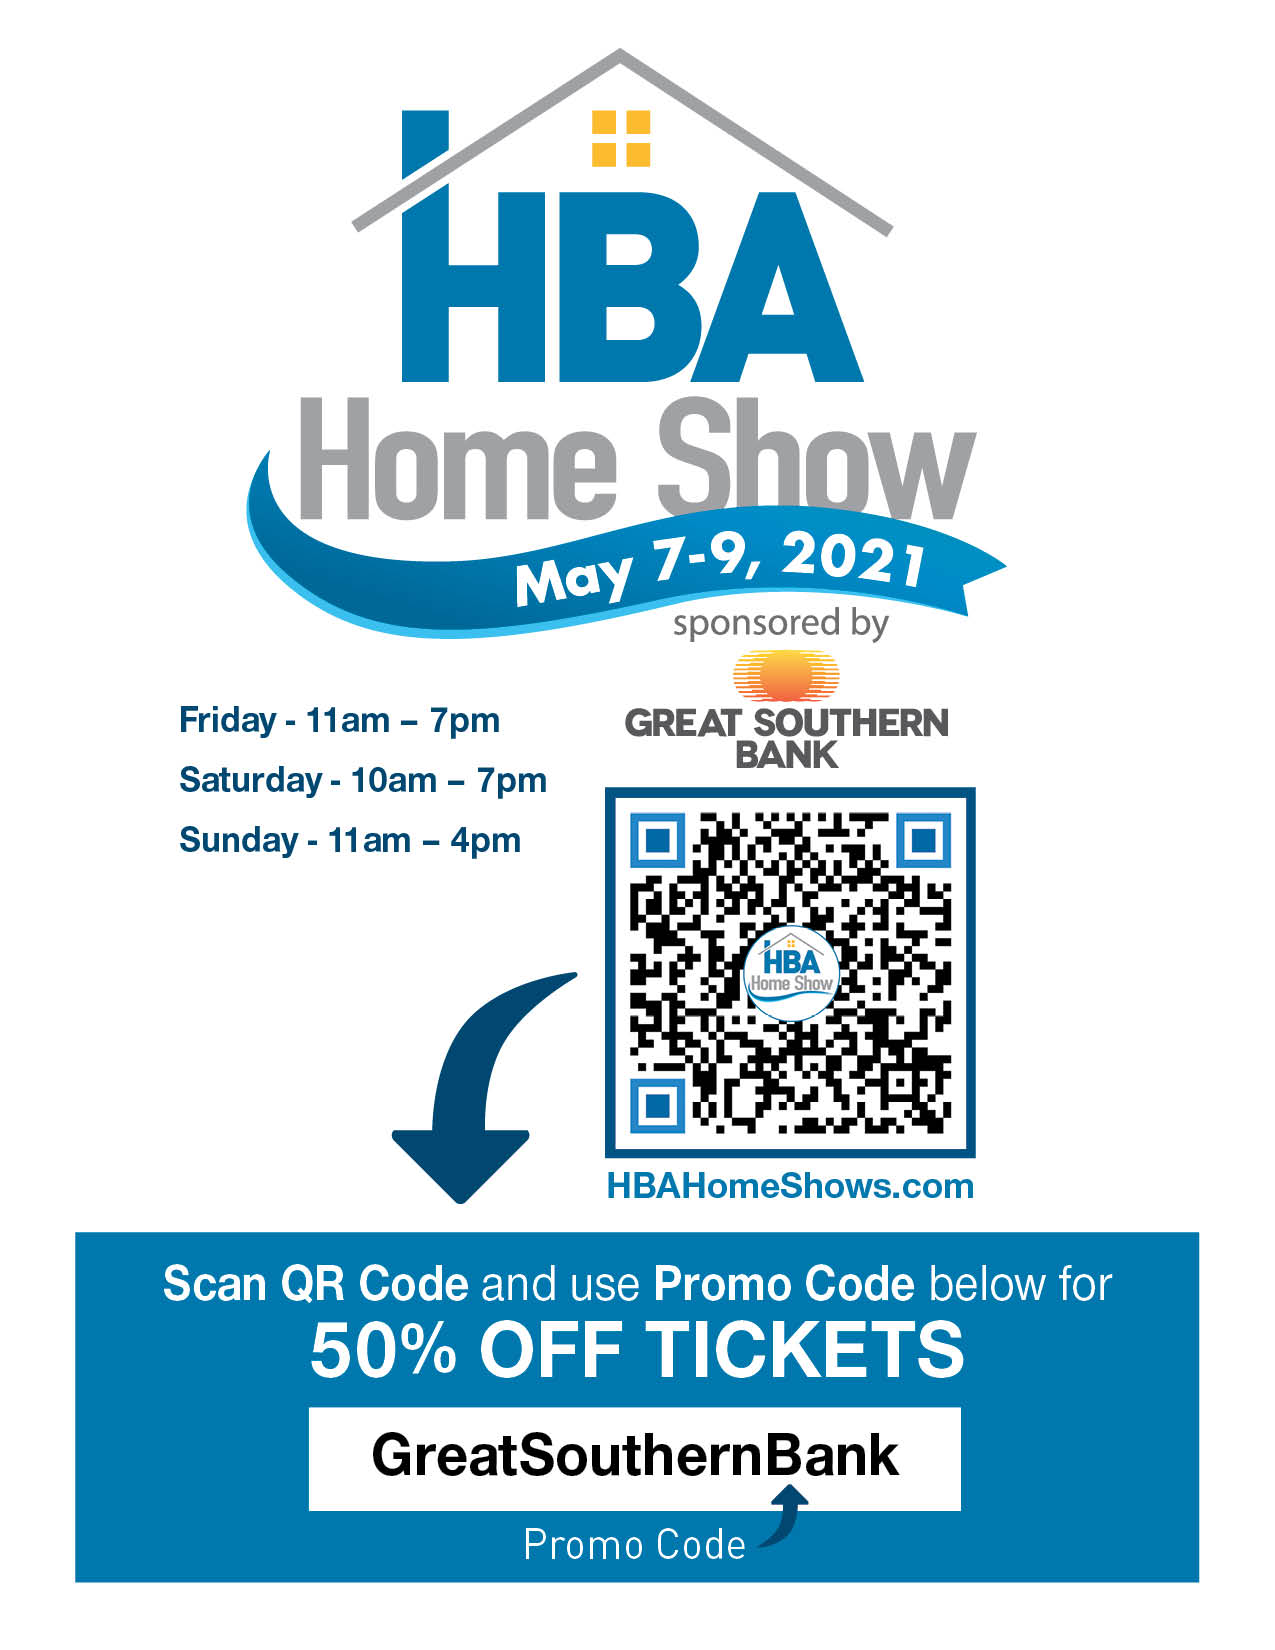 Home Show Tickets Flyer with Sponsor - Sponsor Promo Code